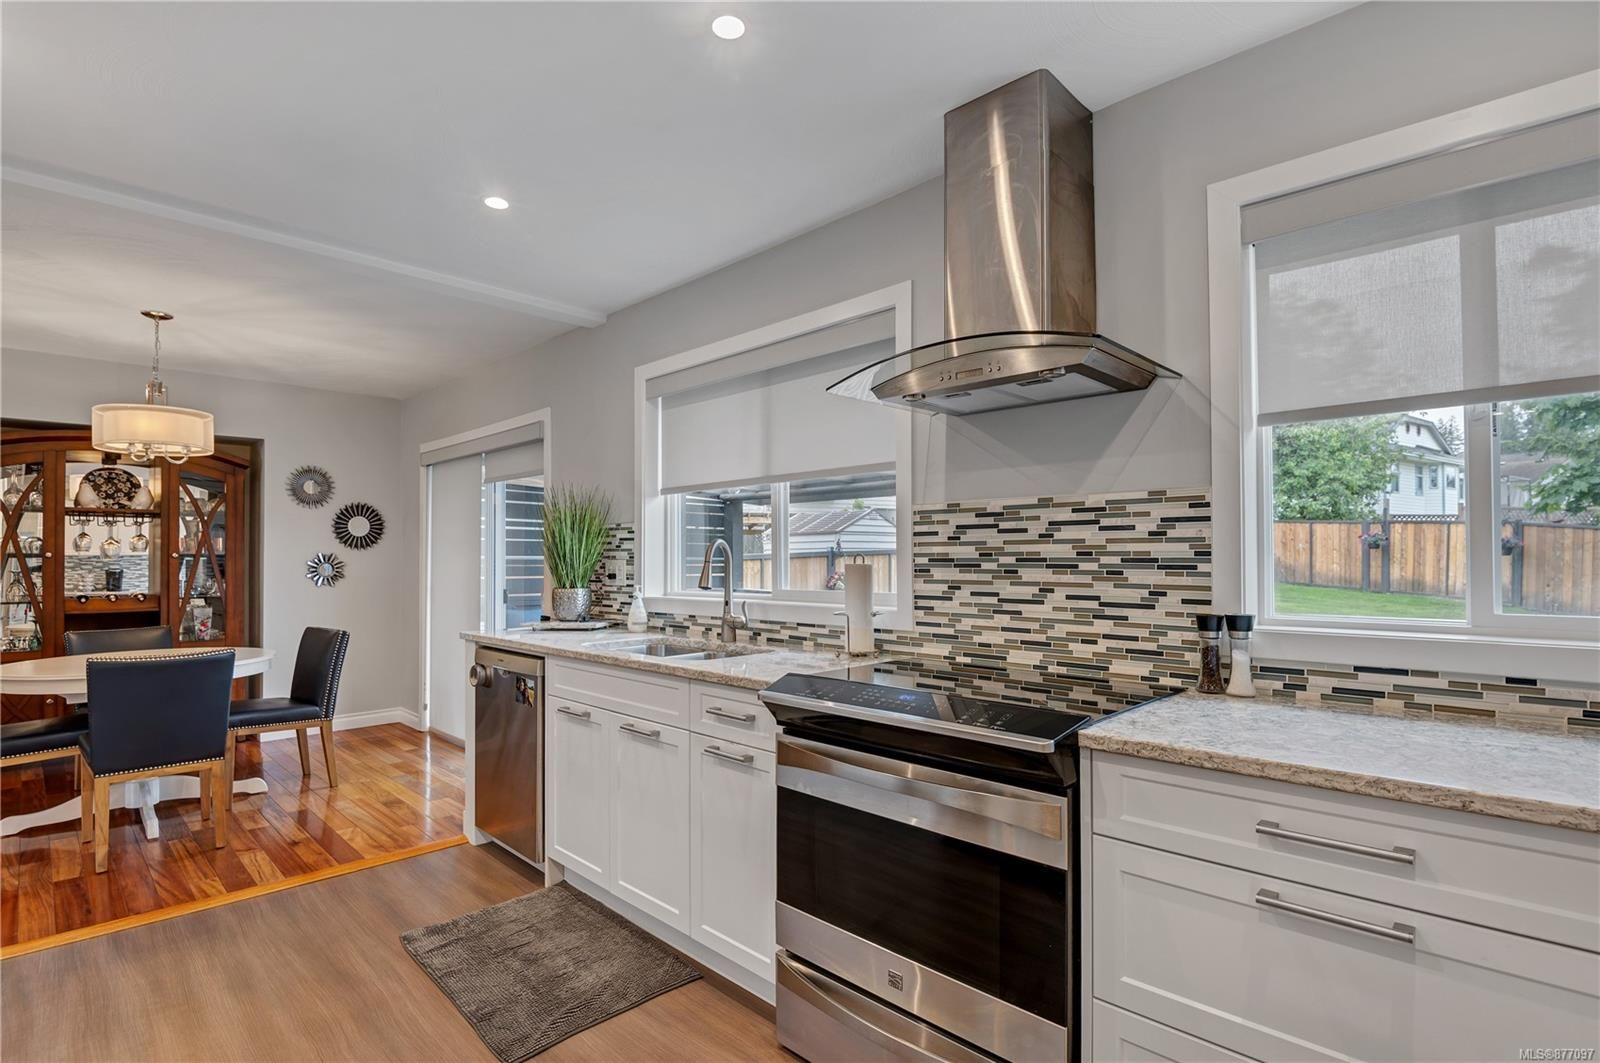 Photo 11: Photos: 2876 Fairmile Rd in : CR Willow Point House for sale (Campbell River)  : MLS®# 877097